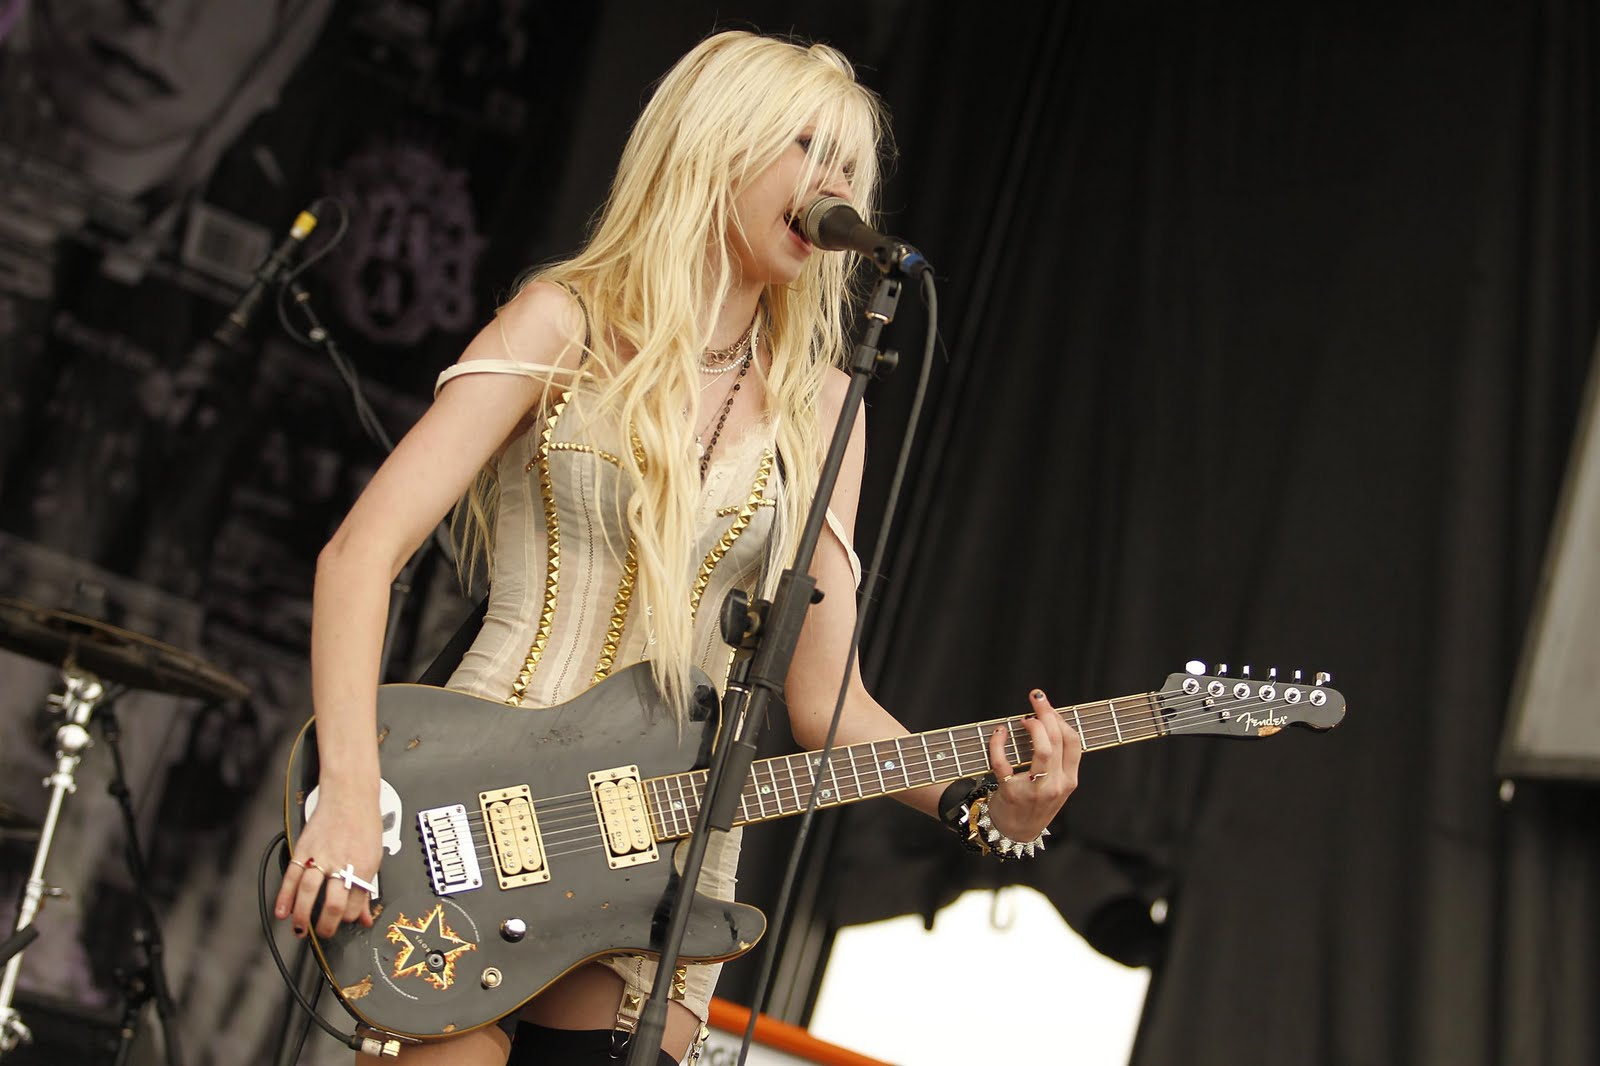 Taylor Momsen Wallpaper and Background Image | 1600x1066 ... тейлор момсен